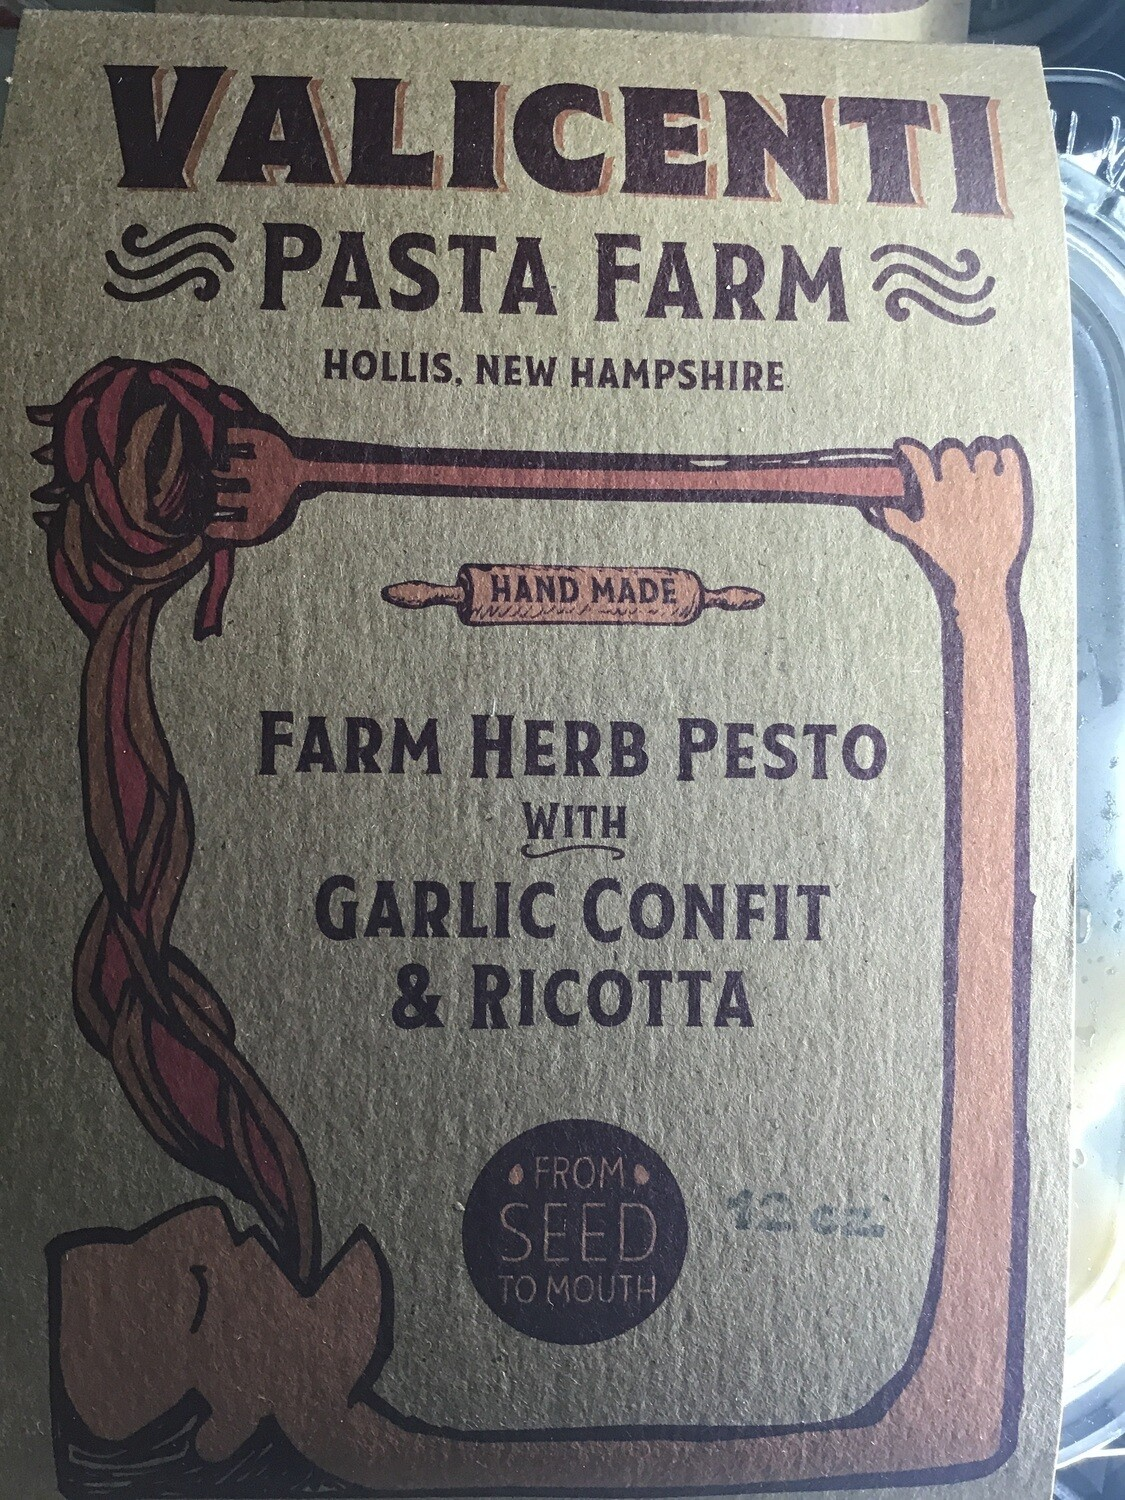 Valicenti Farm Herb Pesto with Garlic Ravioli